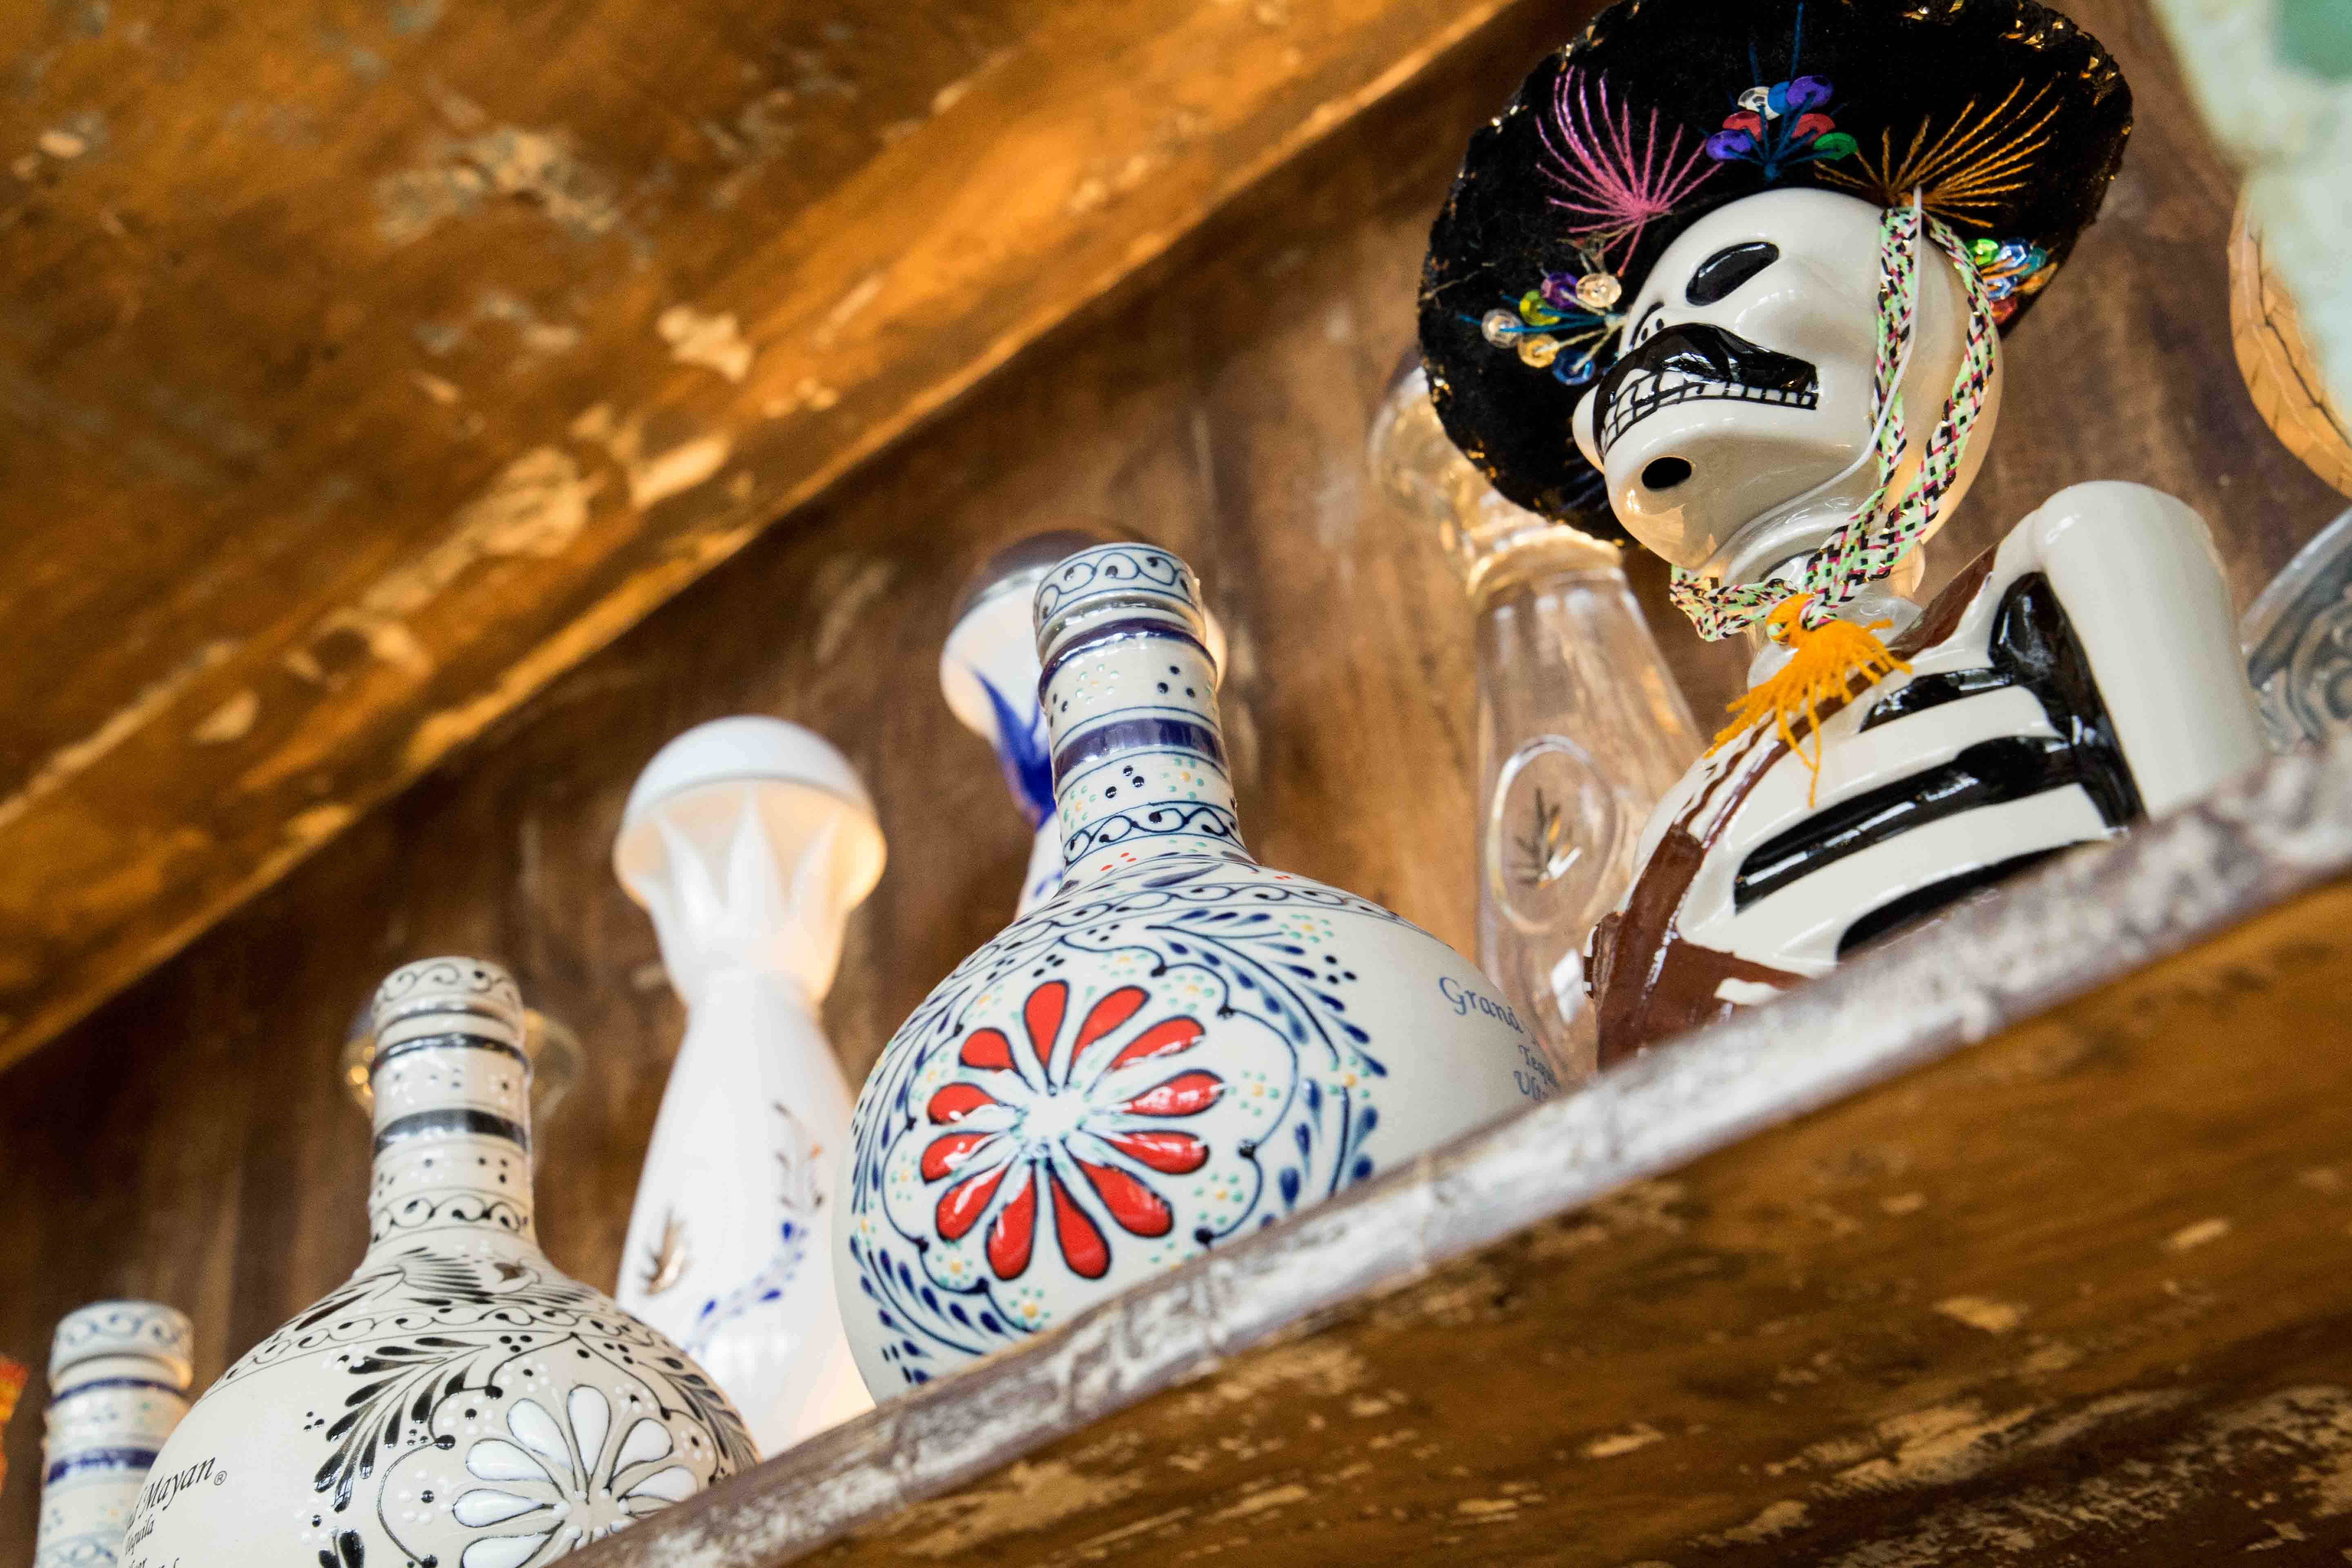 Decorated ceramic bottles of alcohol are lined up on an aged wooden shelf. One is shaped like a skeleton wearing a sombrero.